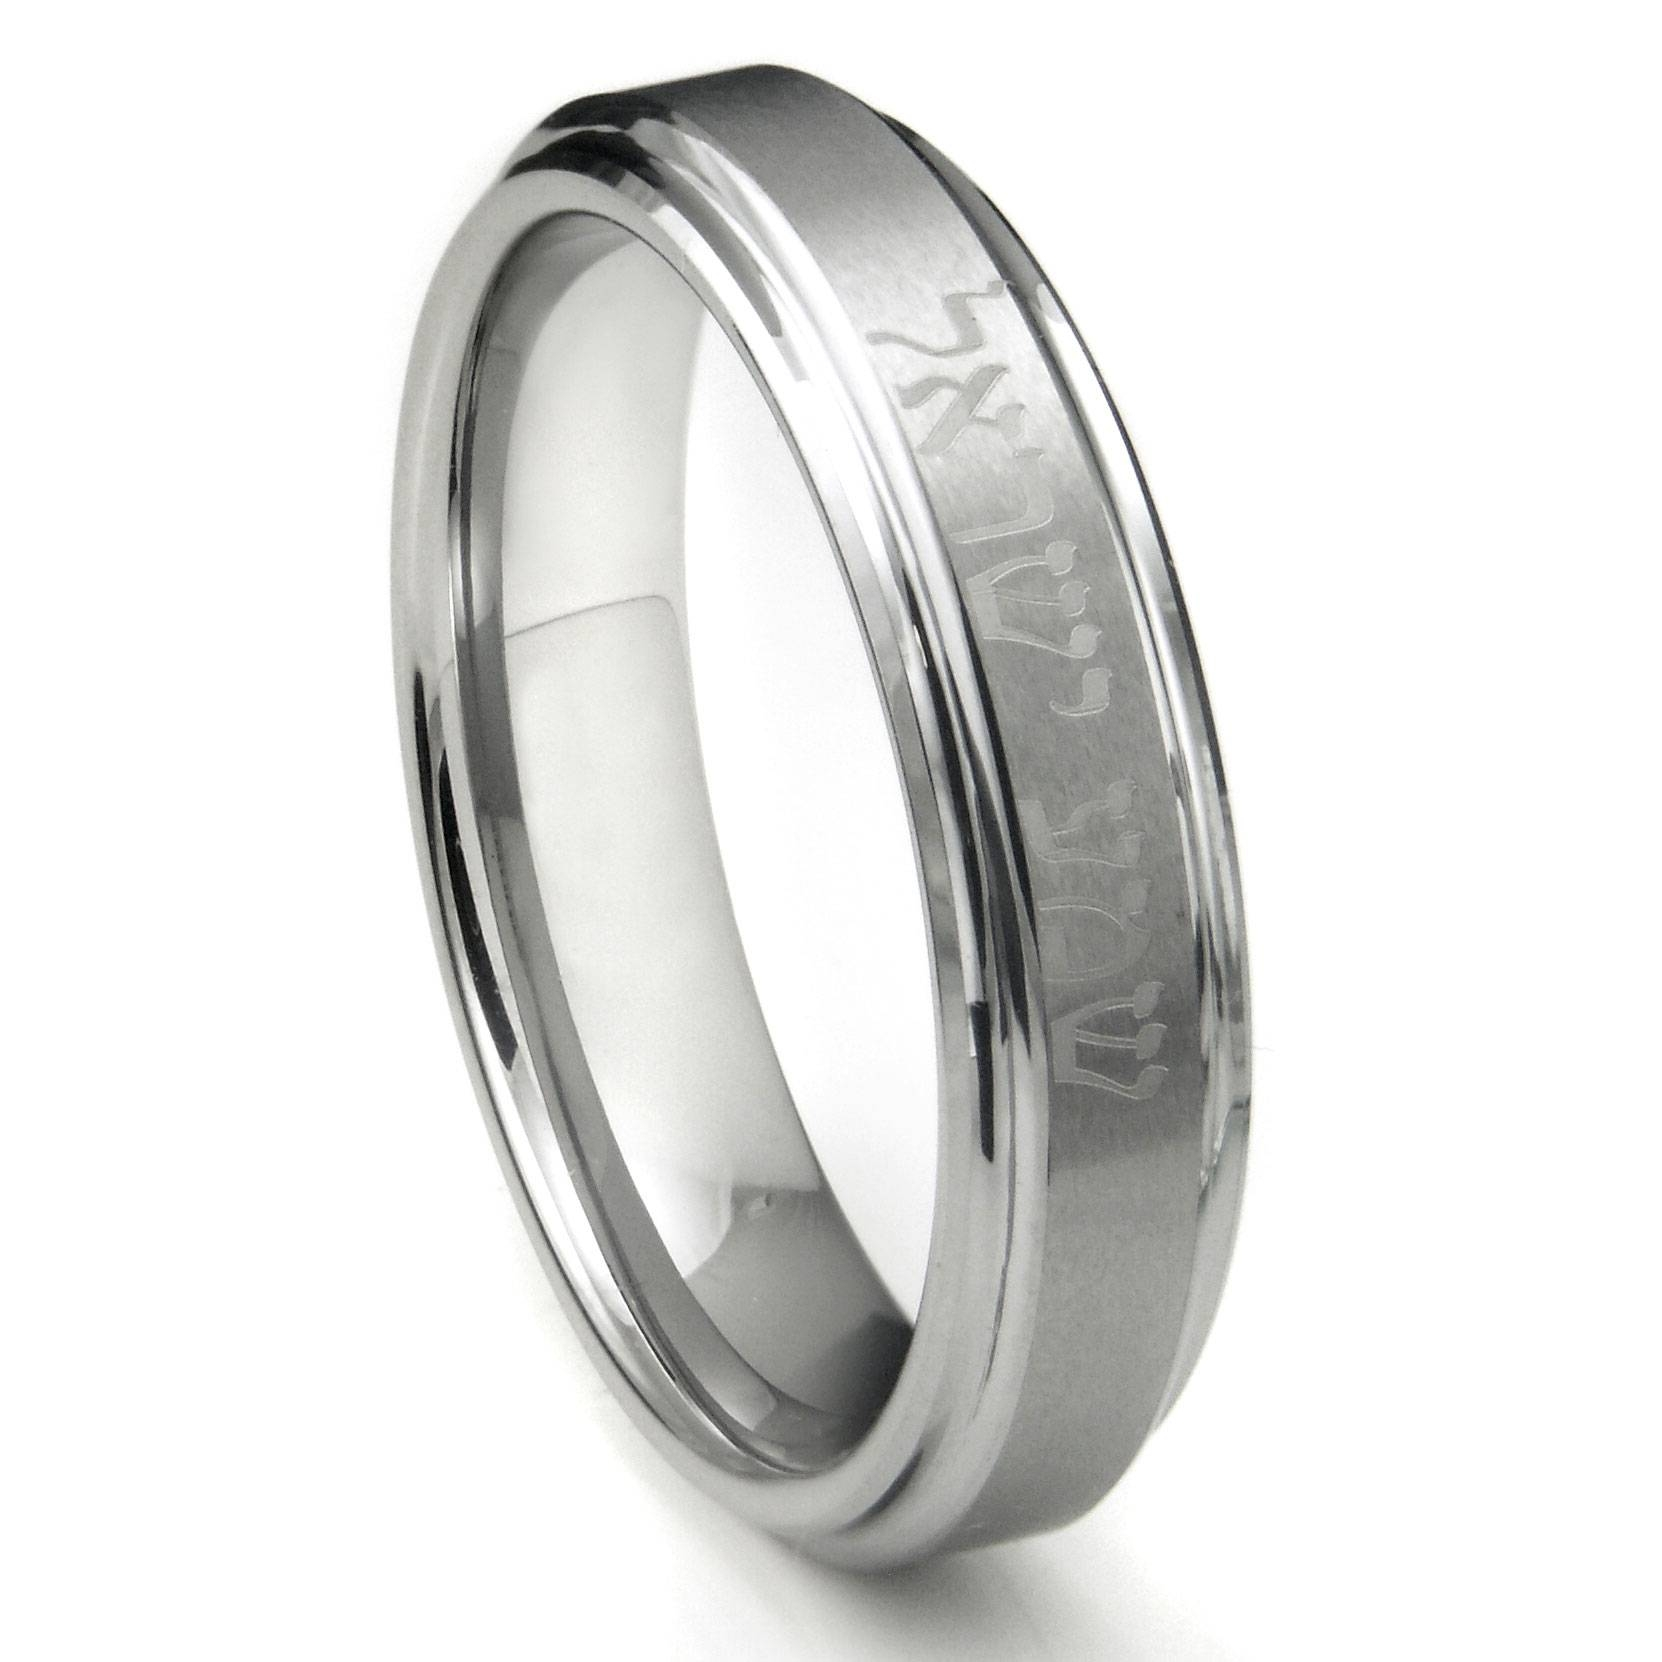 Wedding Rings : Engravable Wedding Bands For Him Engravable Within Engravable Men's Wedding Bands (View 14 of 15)